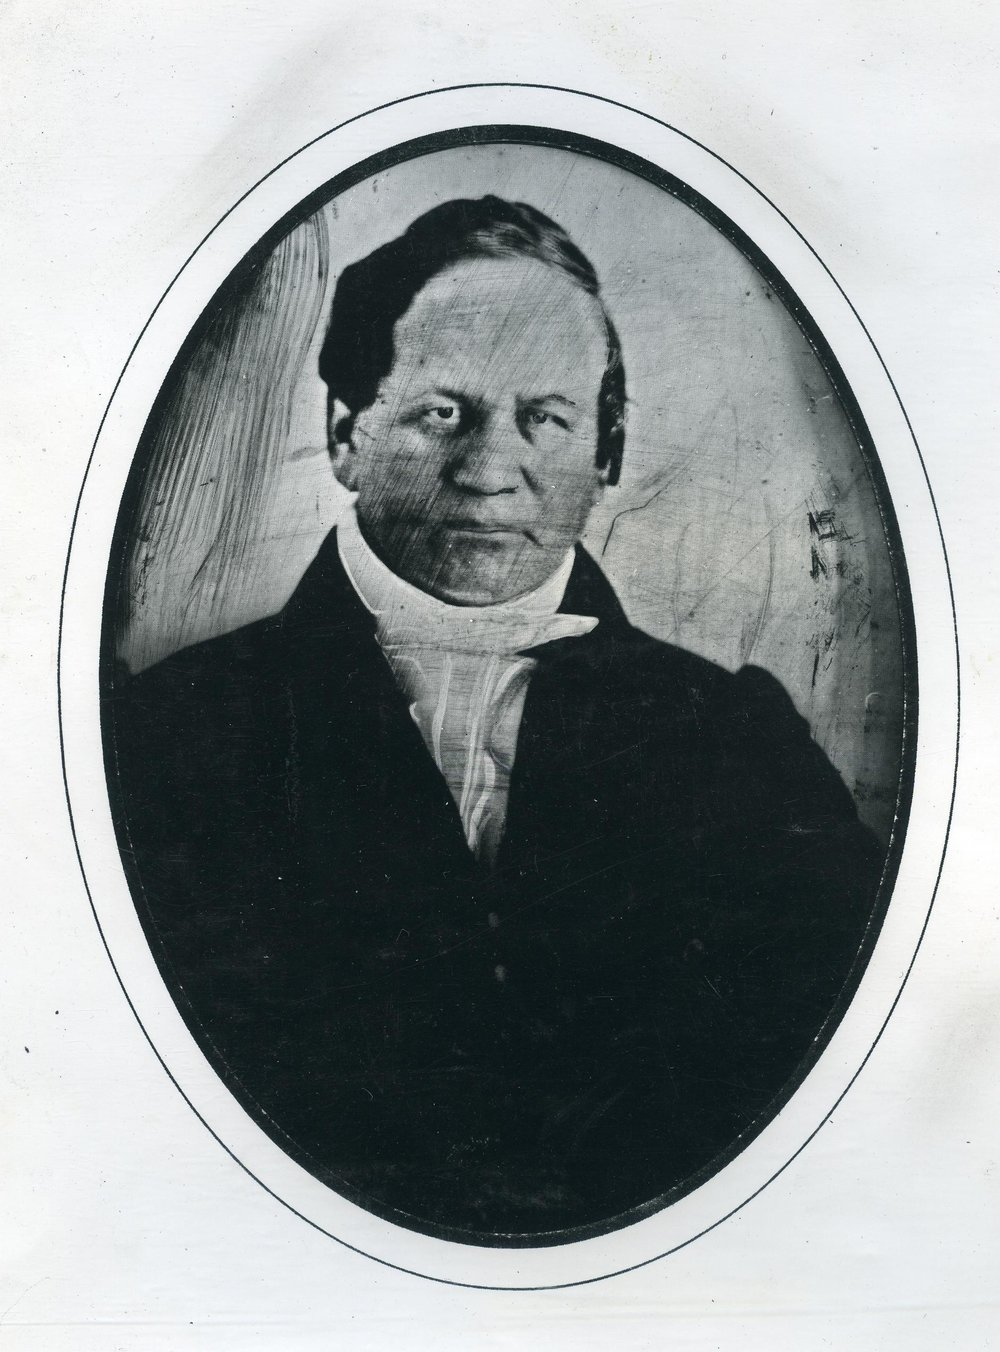 Alexander Twilight - Alexander Twilight was born in Vermont in 1795, the son of a free black man who fought in the American Revolution. As a graduate of Middlebury College, Twilight became the first African-American to obtain a college degree. Later in life, he also became the first African-American to serve in a state legislature.